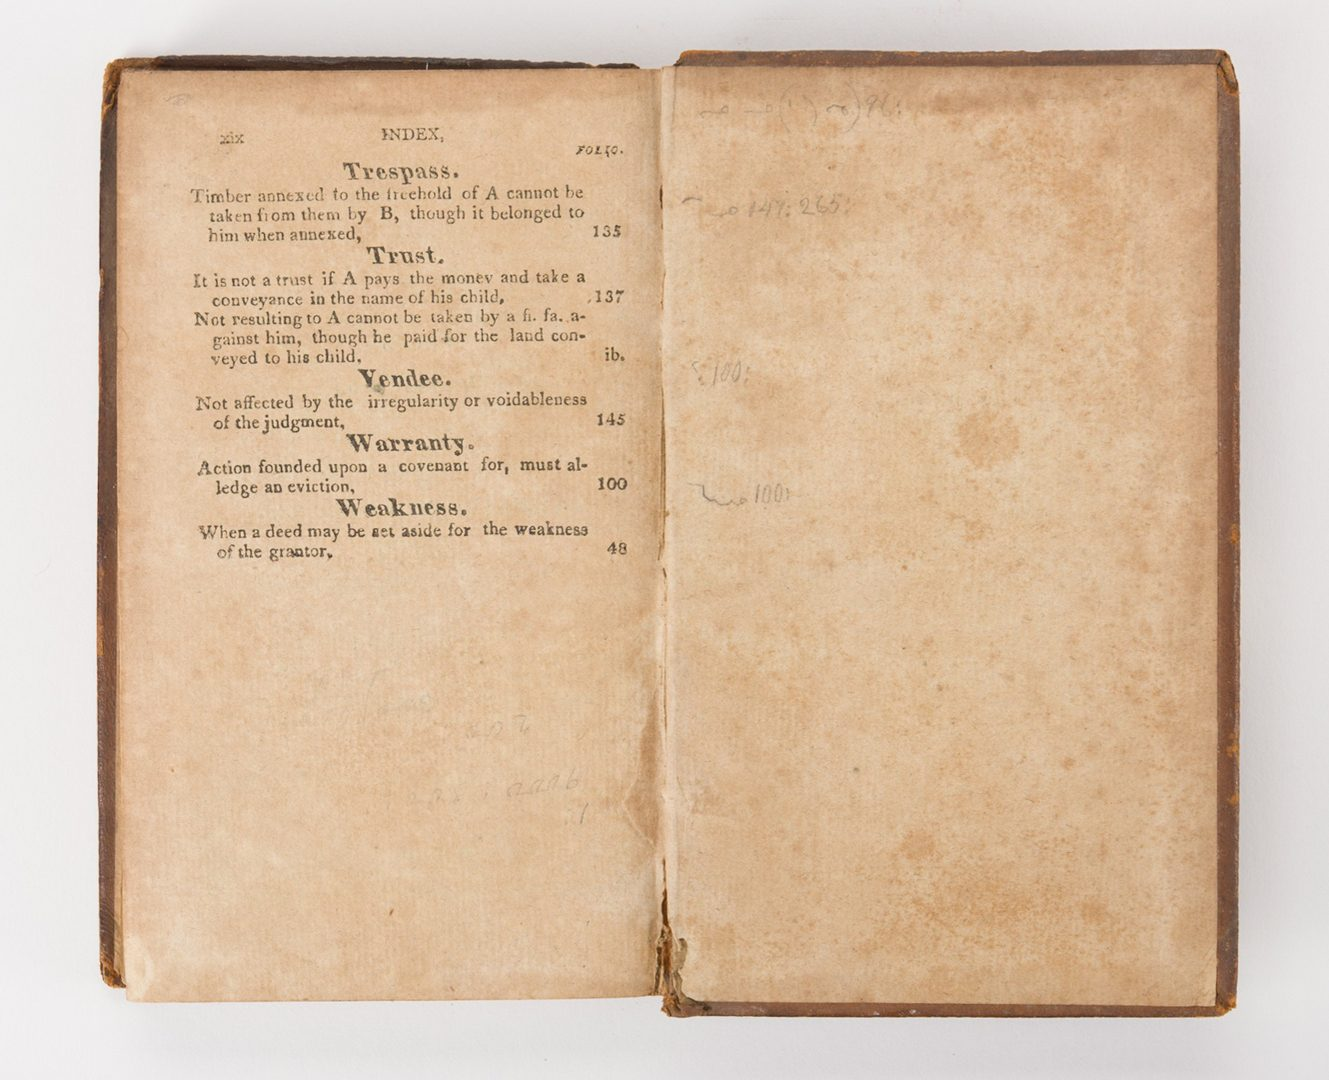 Lot 241: Reports of Cases, State of TN, Haywood, 1818